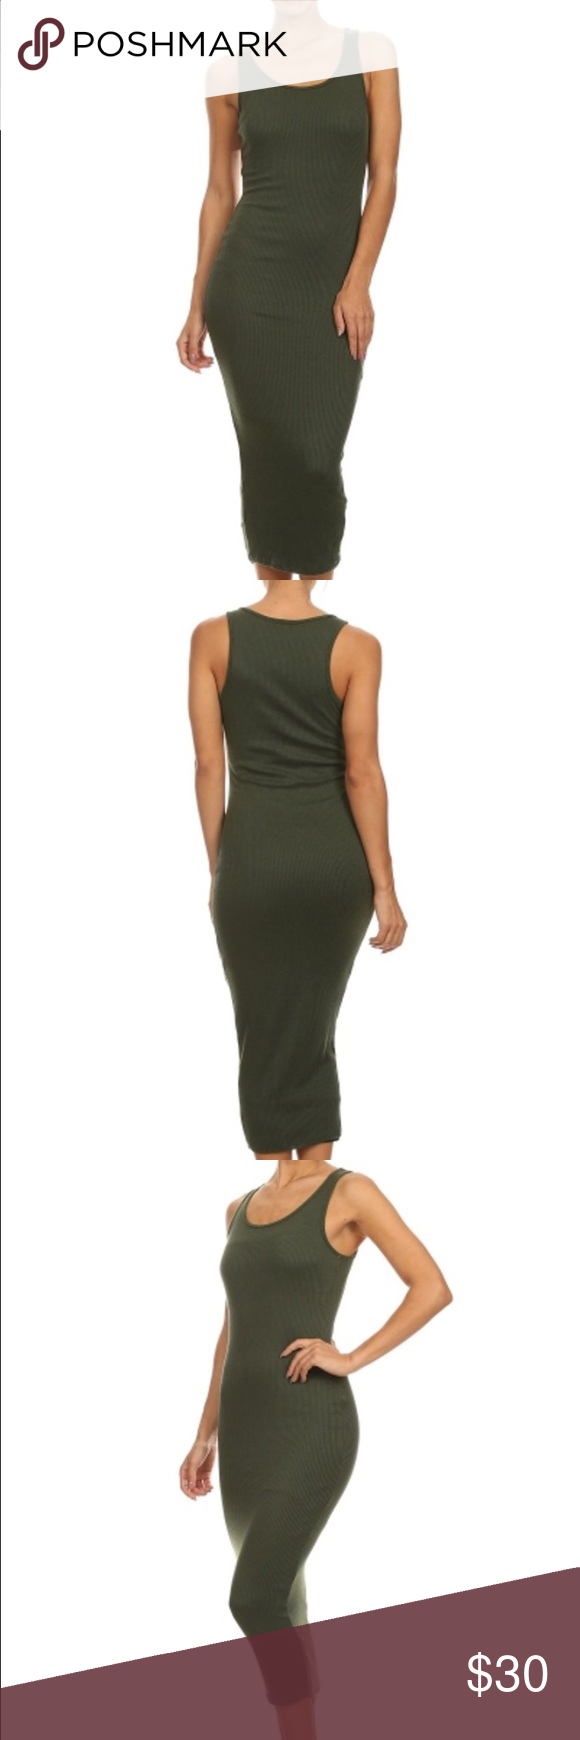 Casual Ribbed Olive Sleeveless Bodycon Midi Dress Solid color, round neckline, sleeveless, midi dress. Dresses Maxi